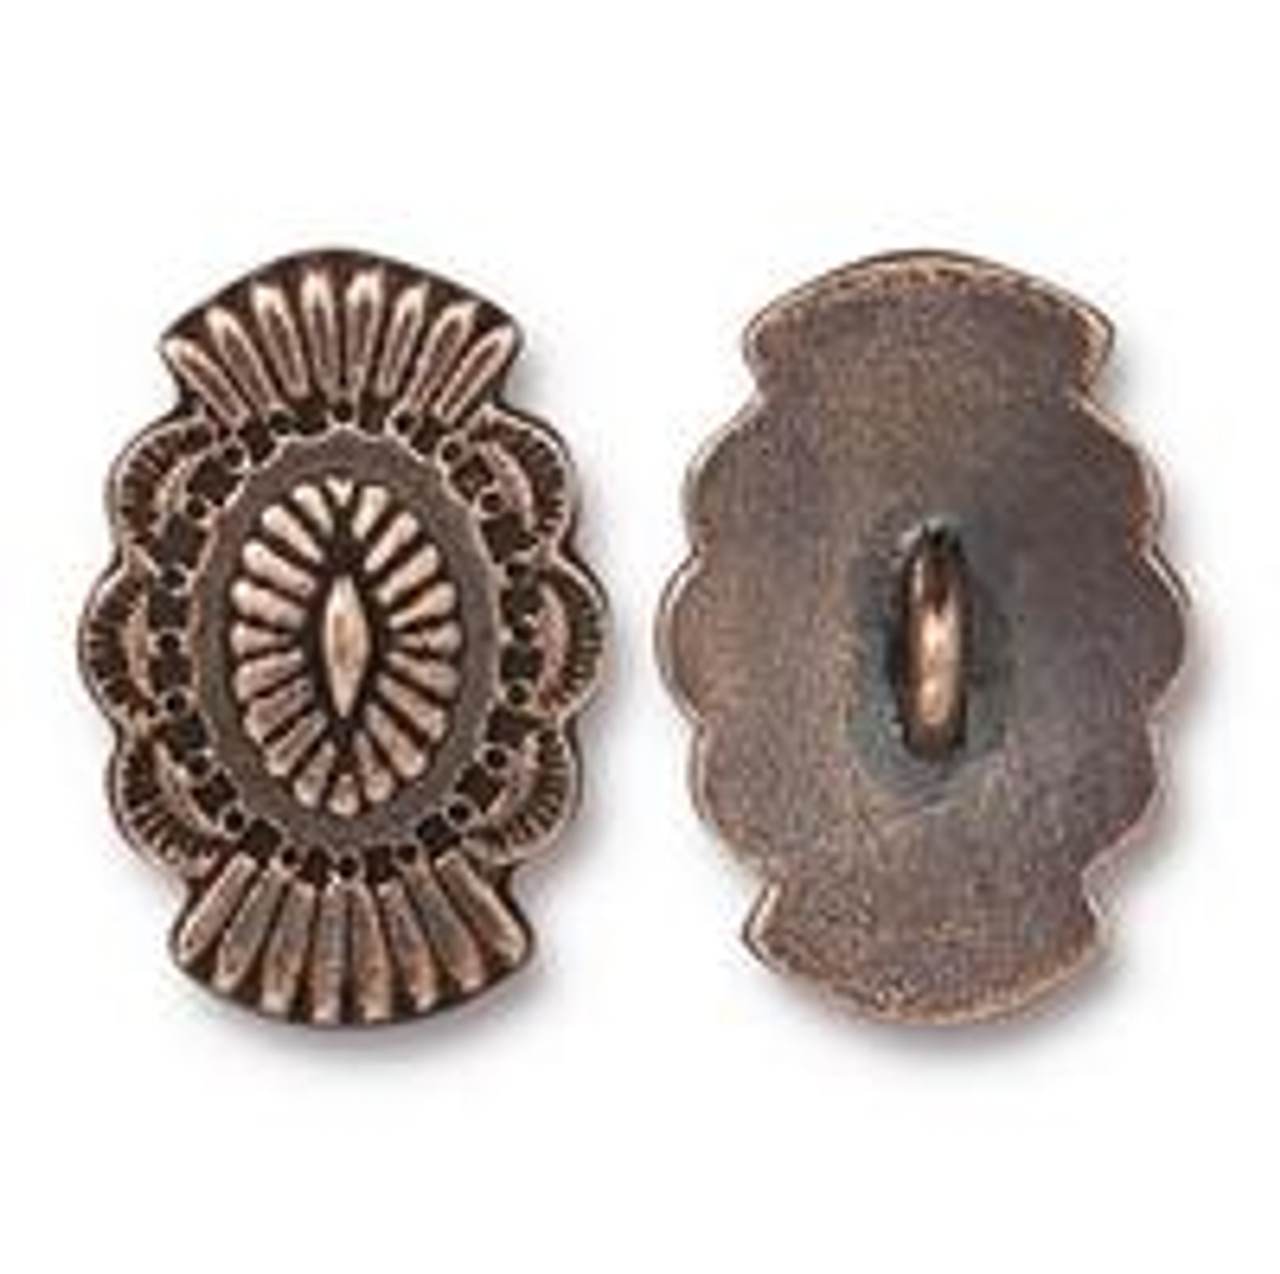 Antique Copper Plated Western Button (1 Piece)